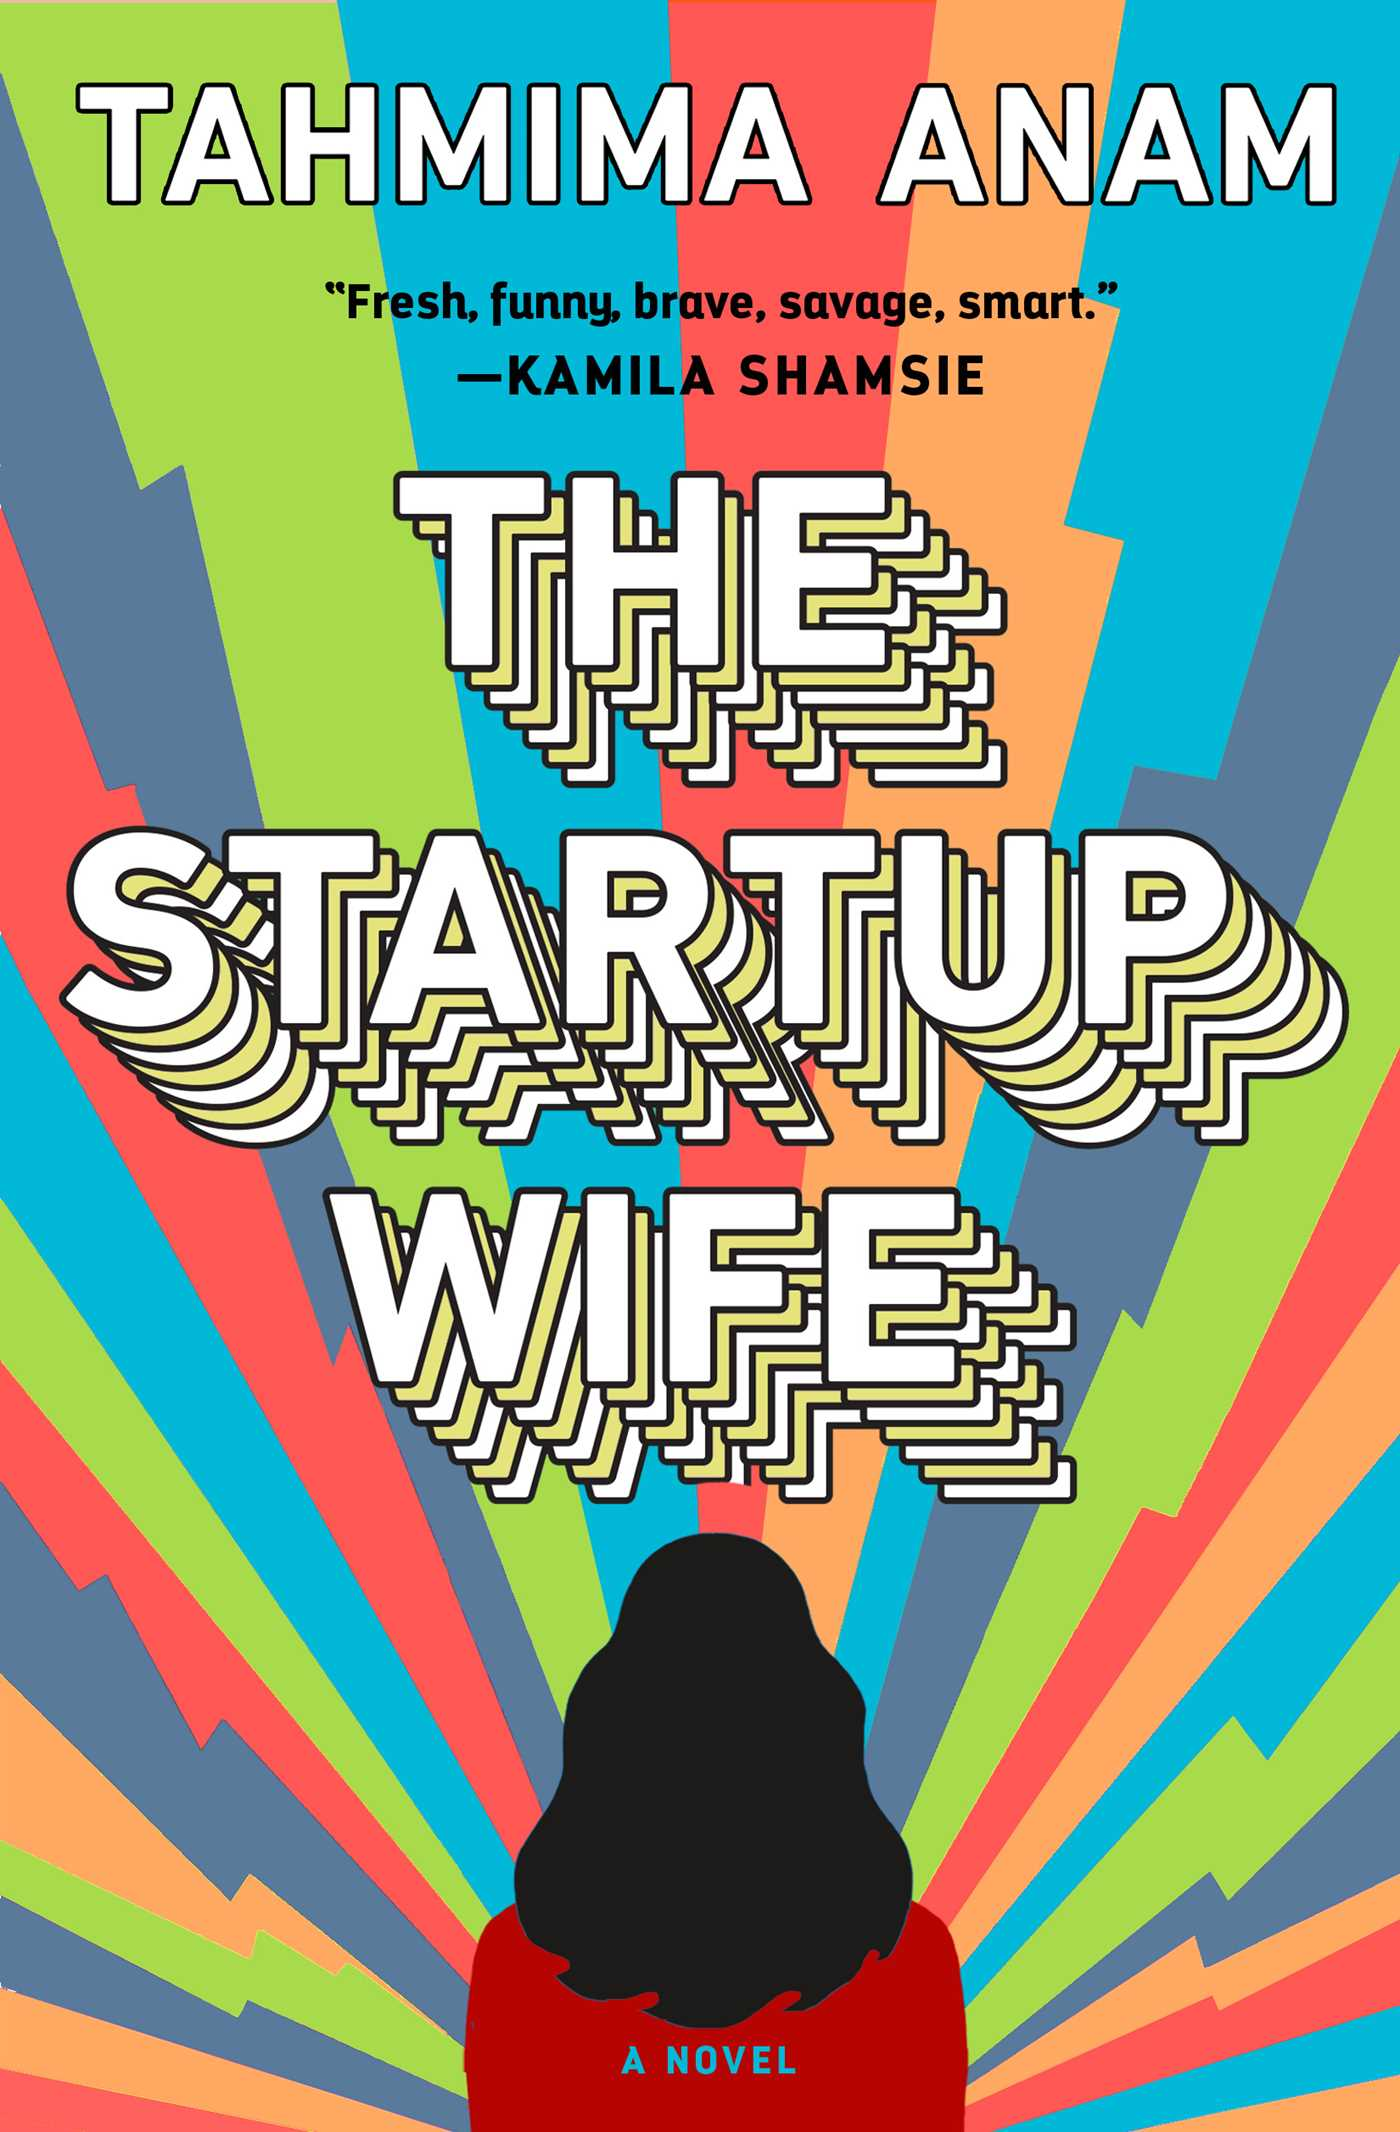 The Startup Wife: A Novel by Tahmima Anam